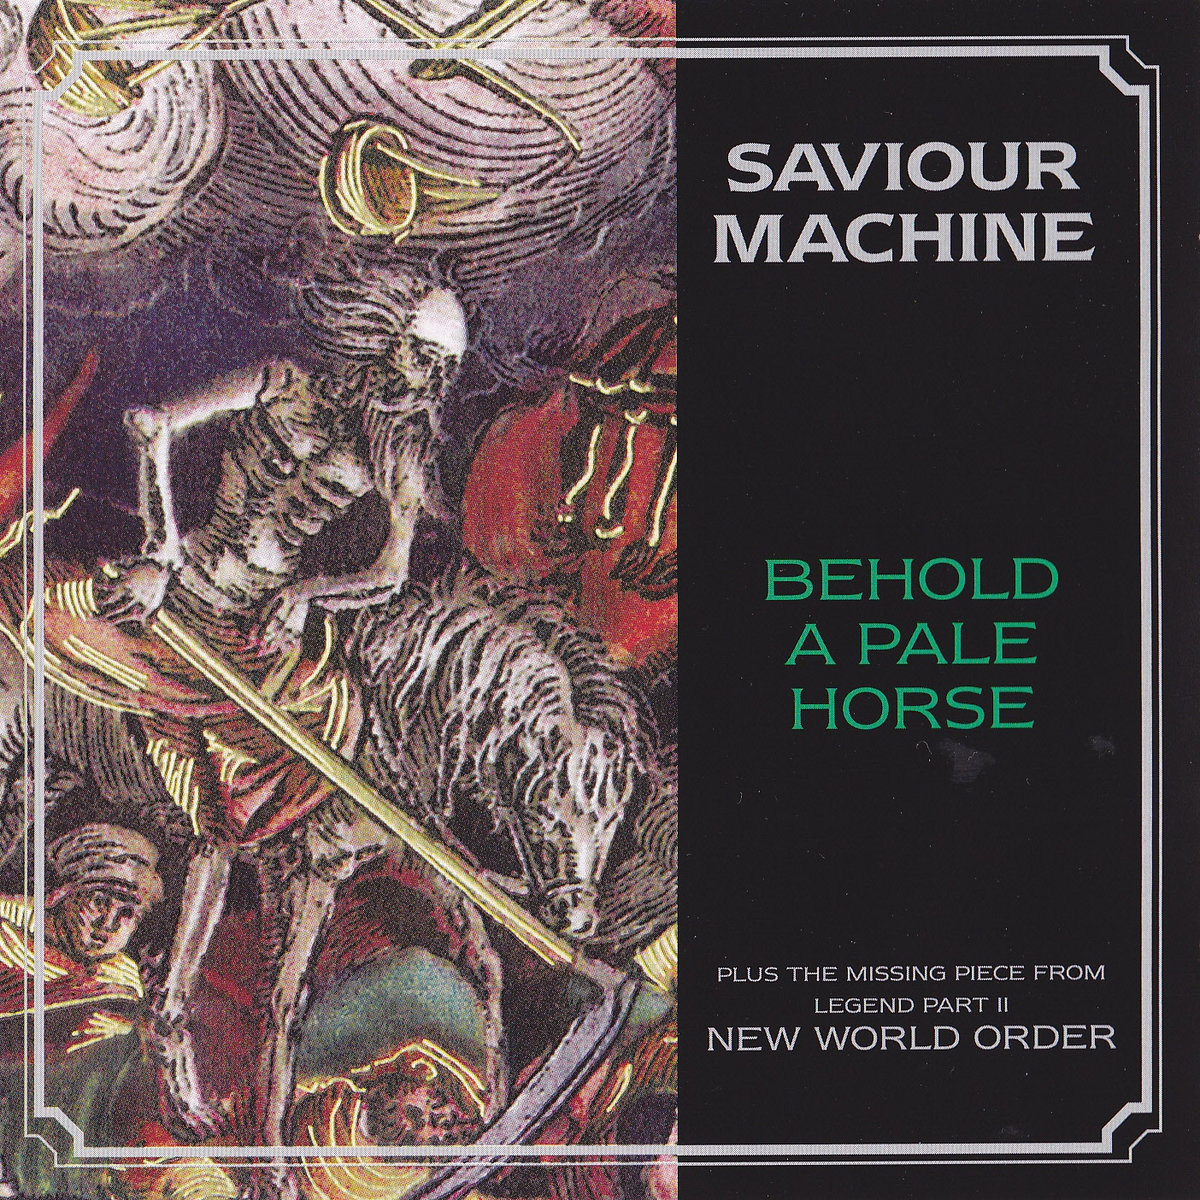 BEHOLD A PALE HORSE (single)